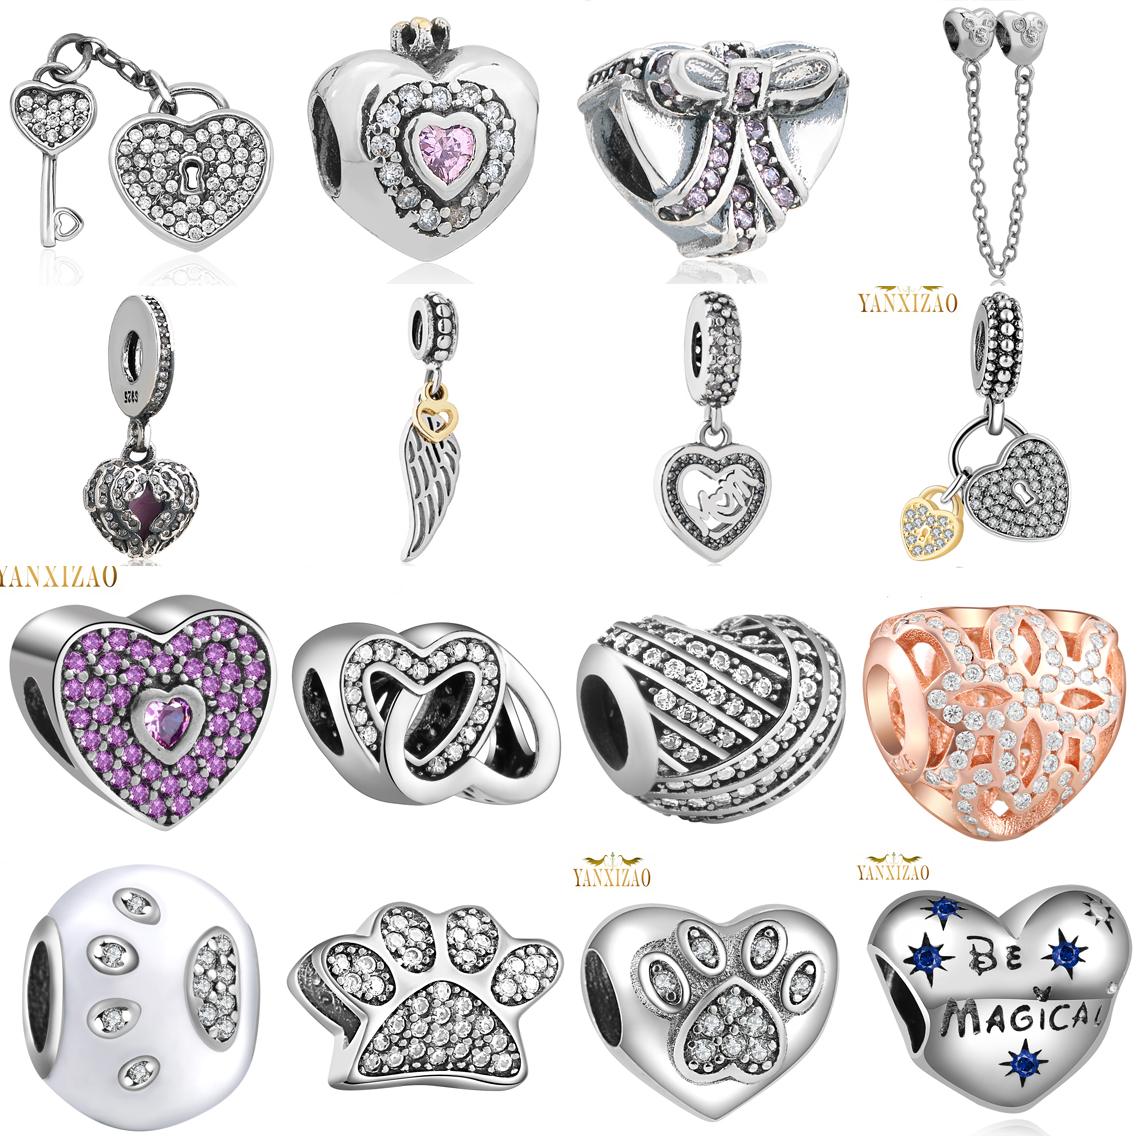 Pandora Style Jewelry: Aliexpress.com : Buy Hot 925 Silver European Cubic